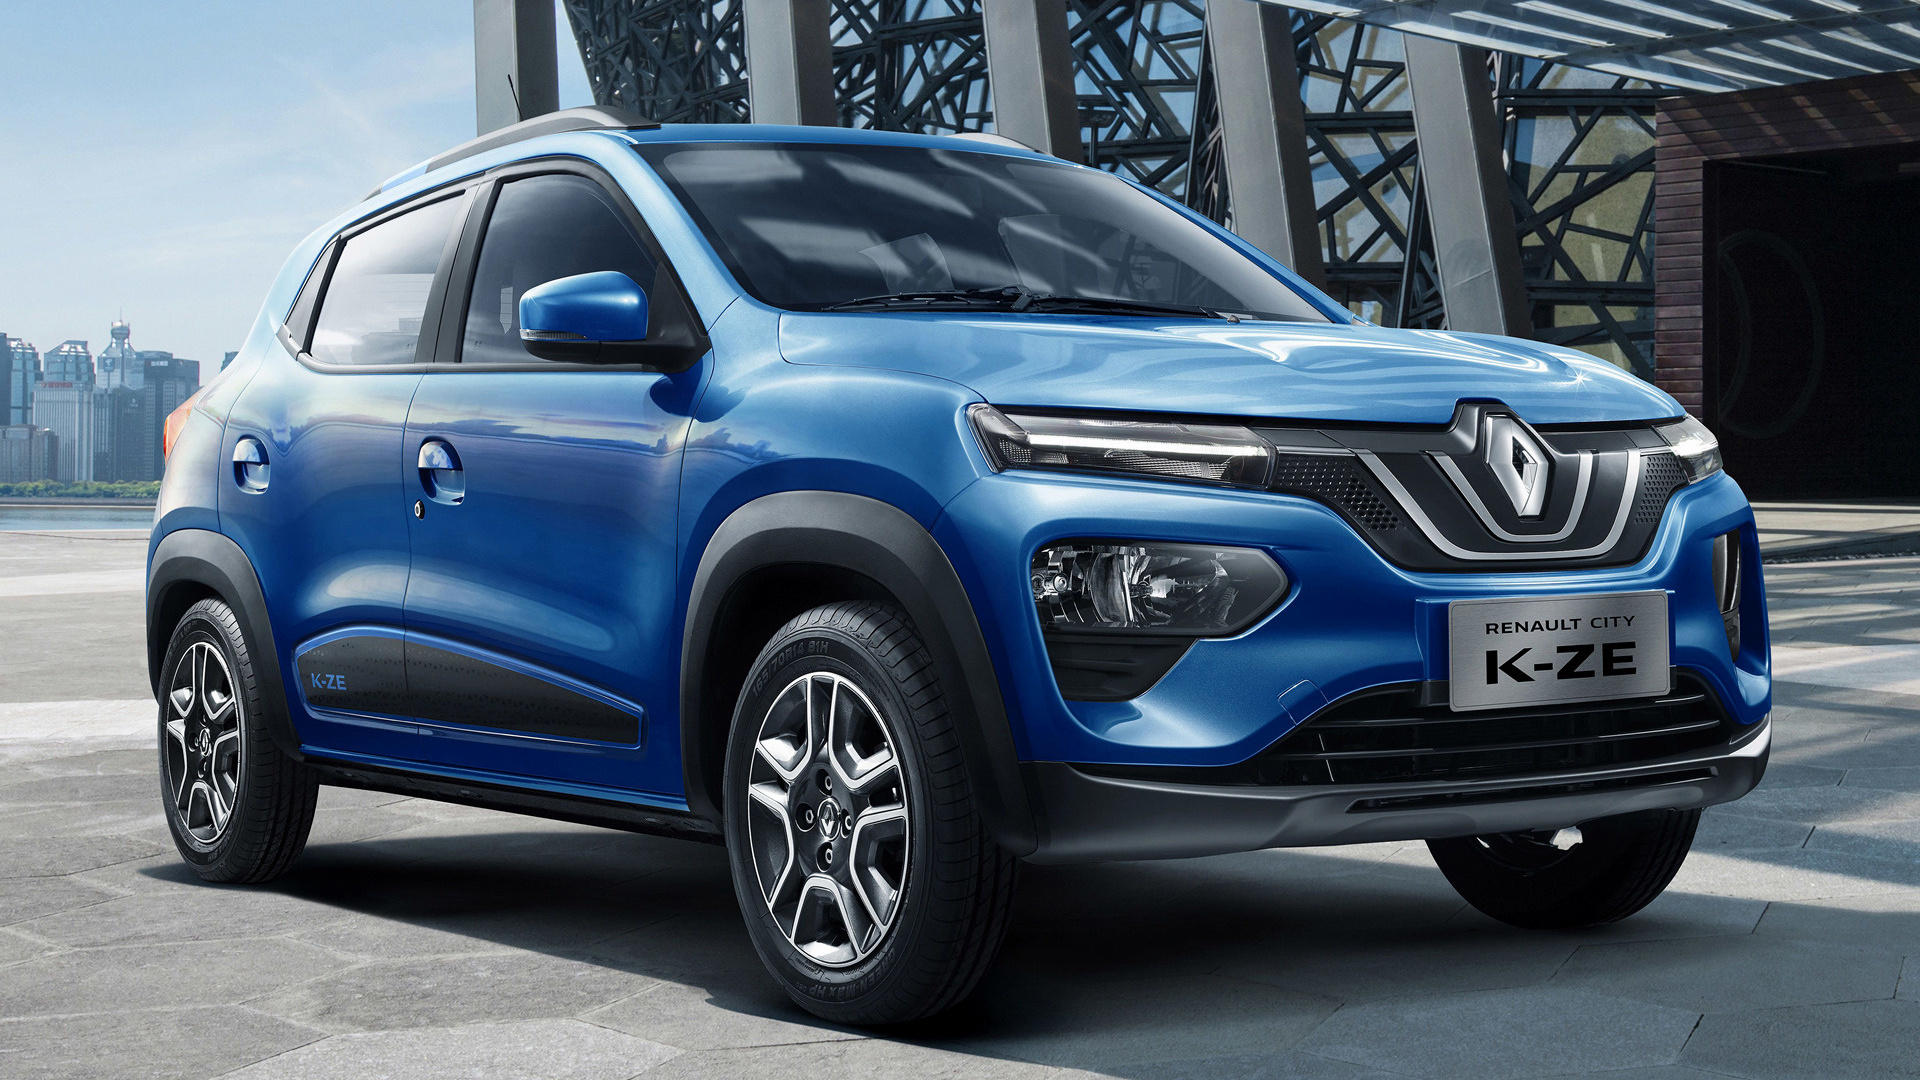 2019 Renault City K Ze Cn Wallpapers And Hd Images